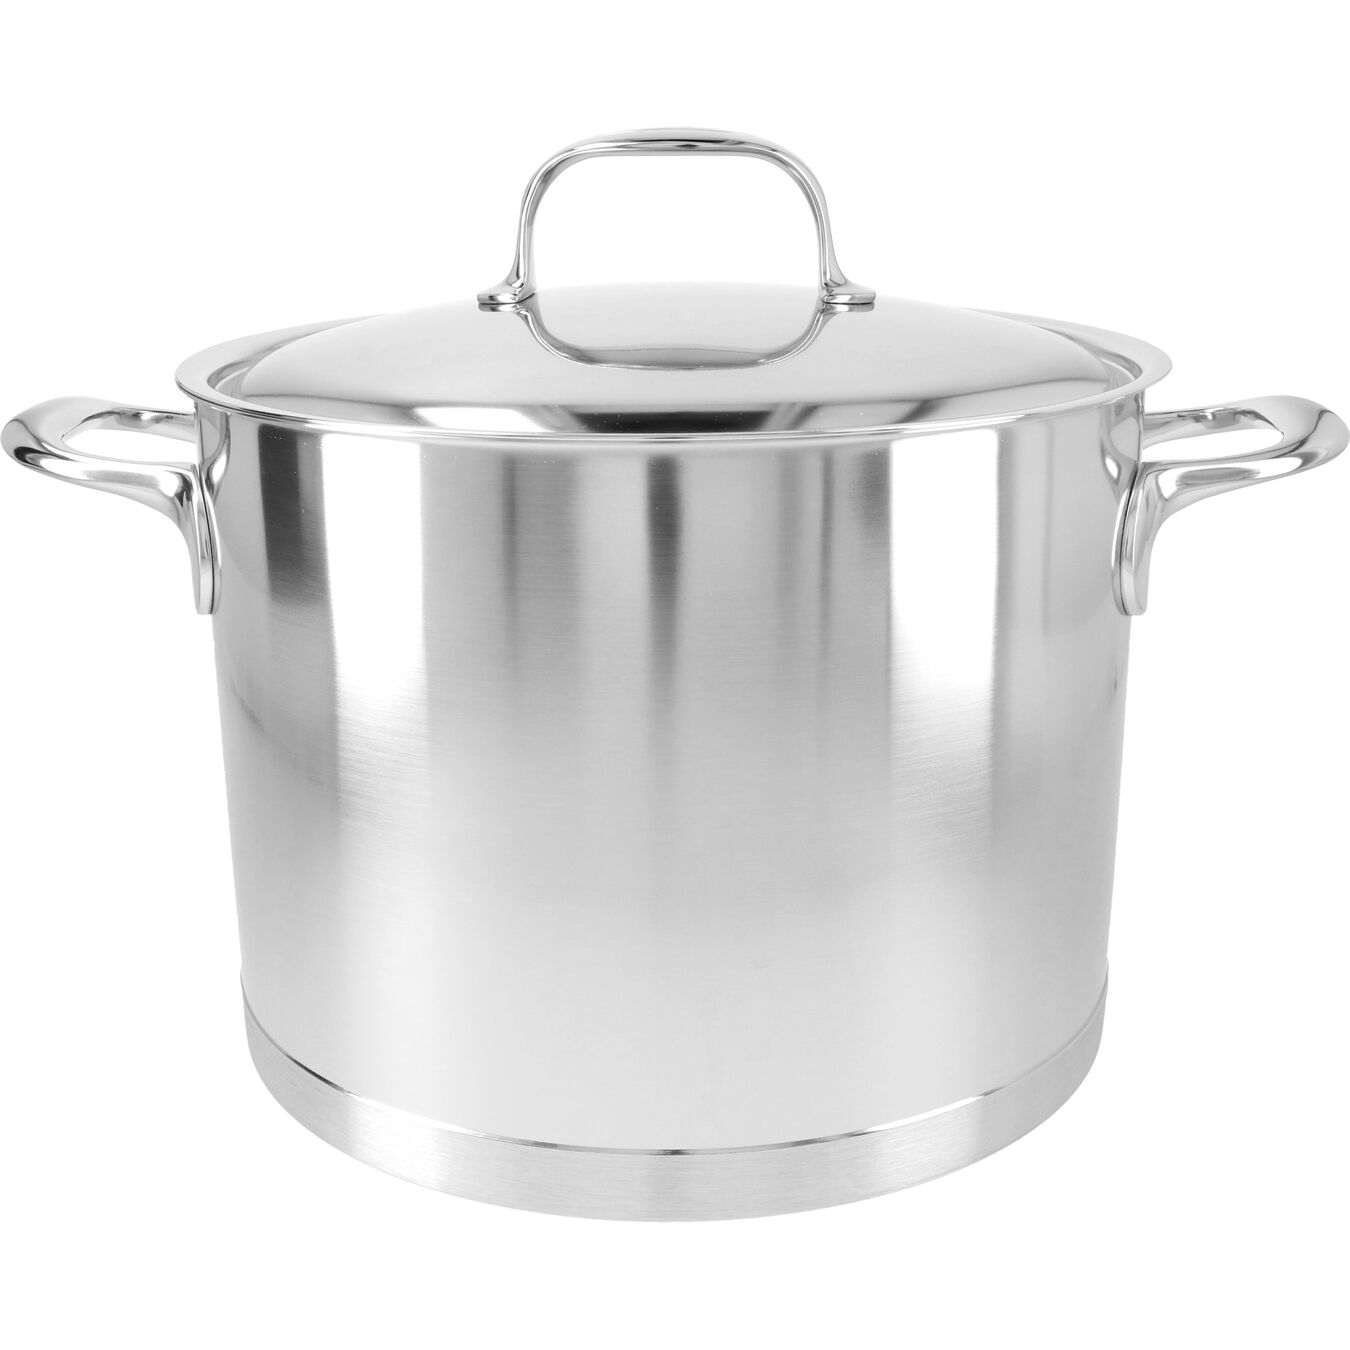 8.5 qt Stock pot with lid, 18/10 Stainless Steel ,,large 1